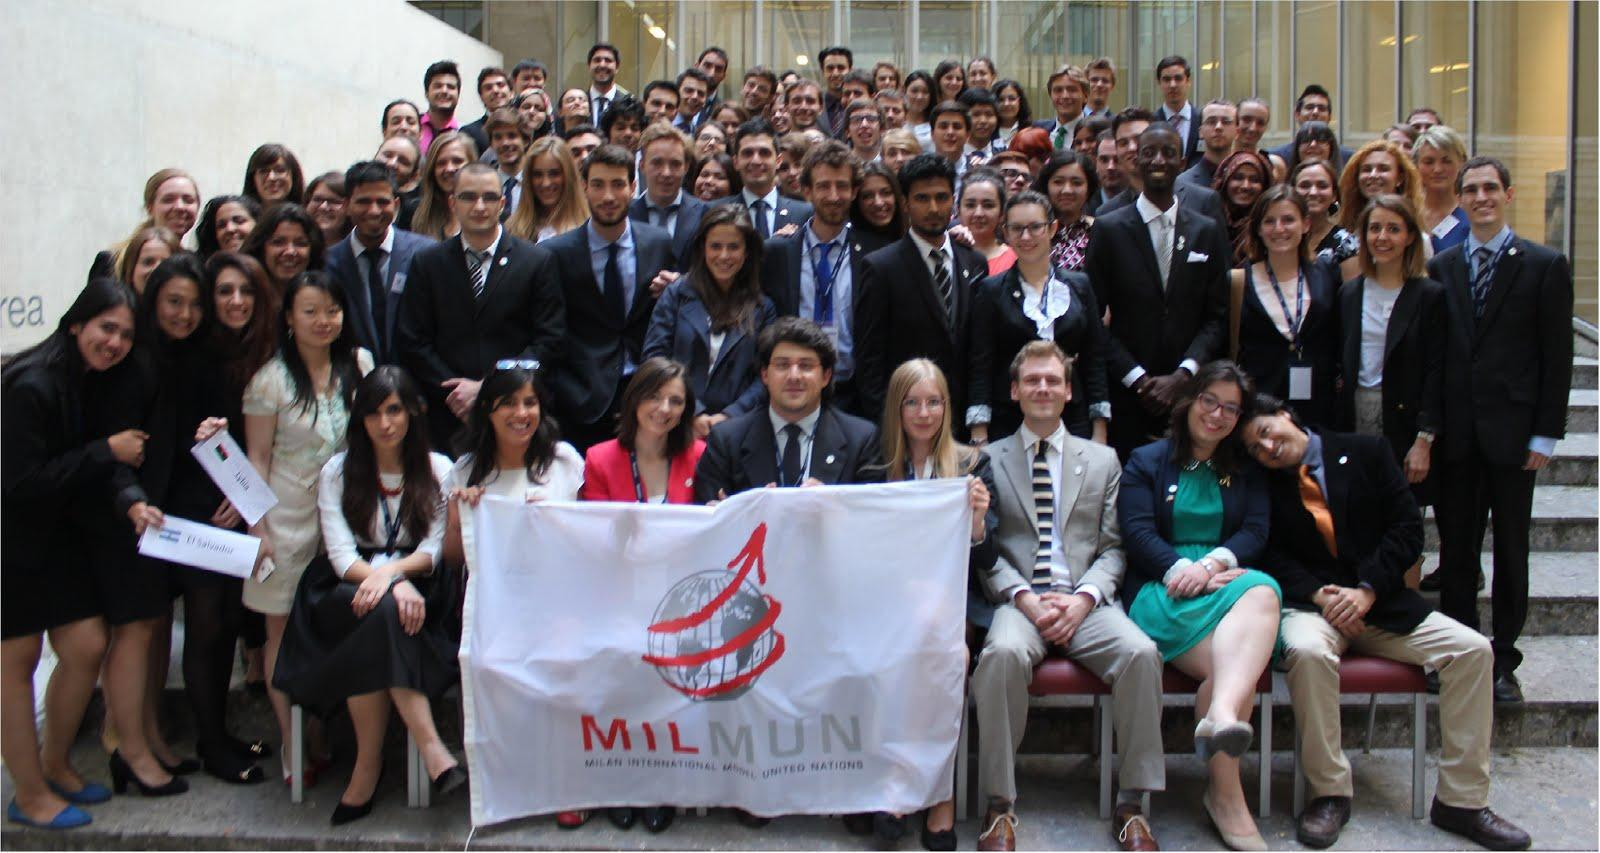 MILMUN 2014 Conference picture